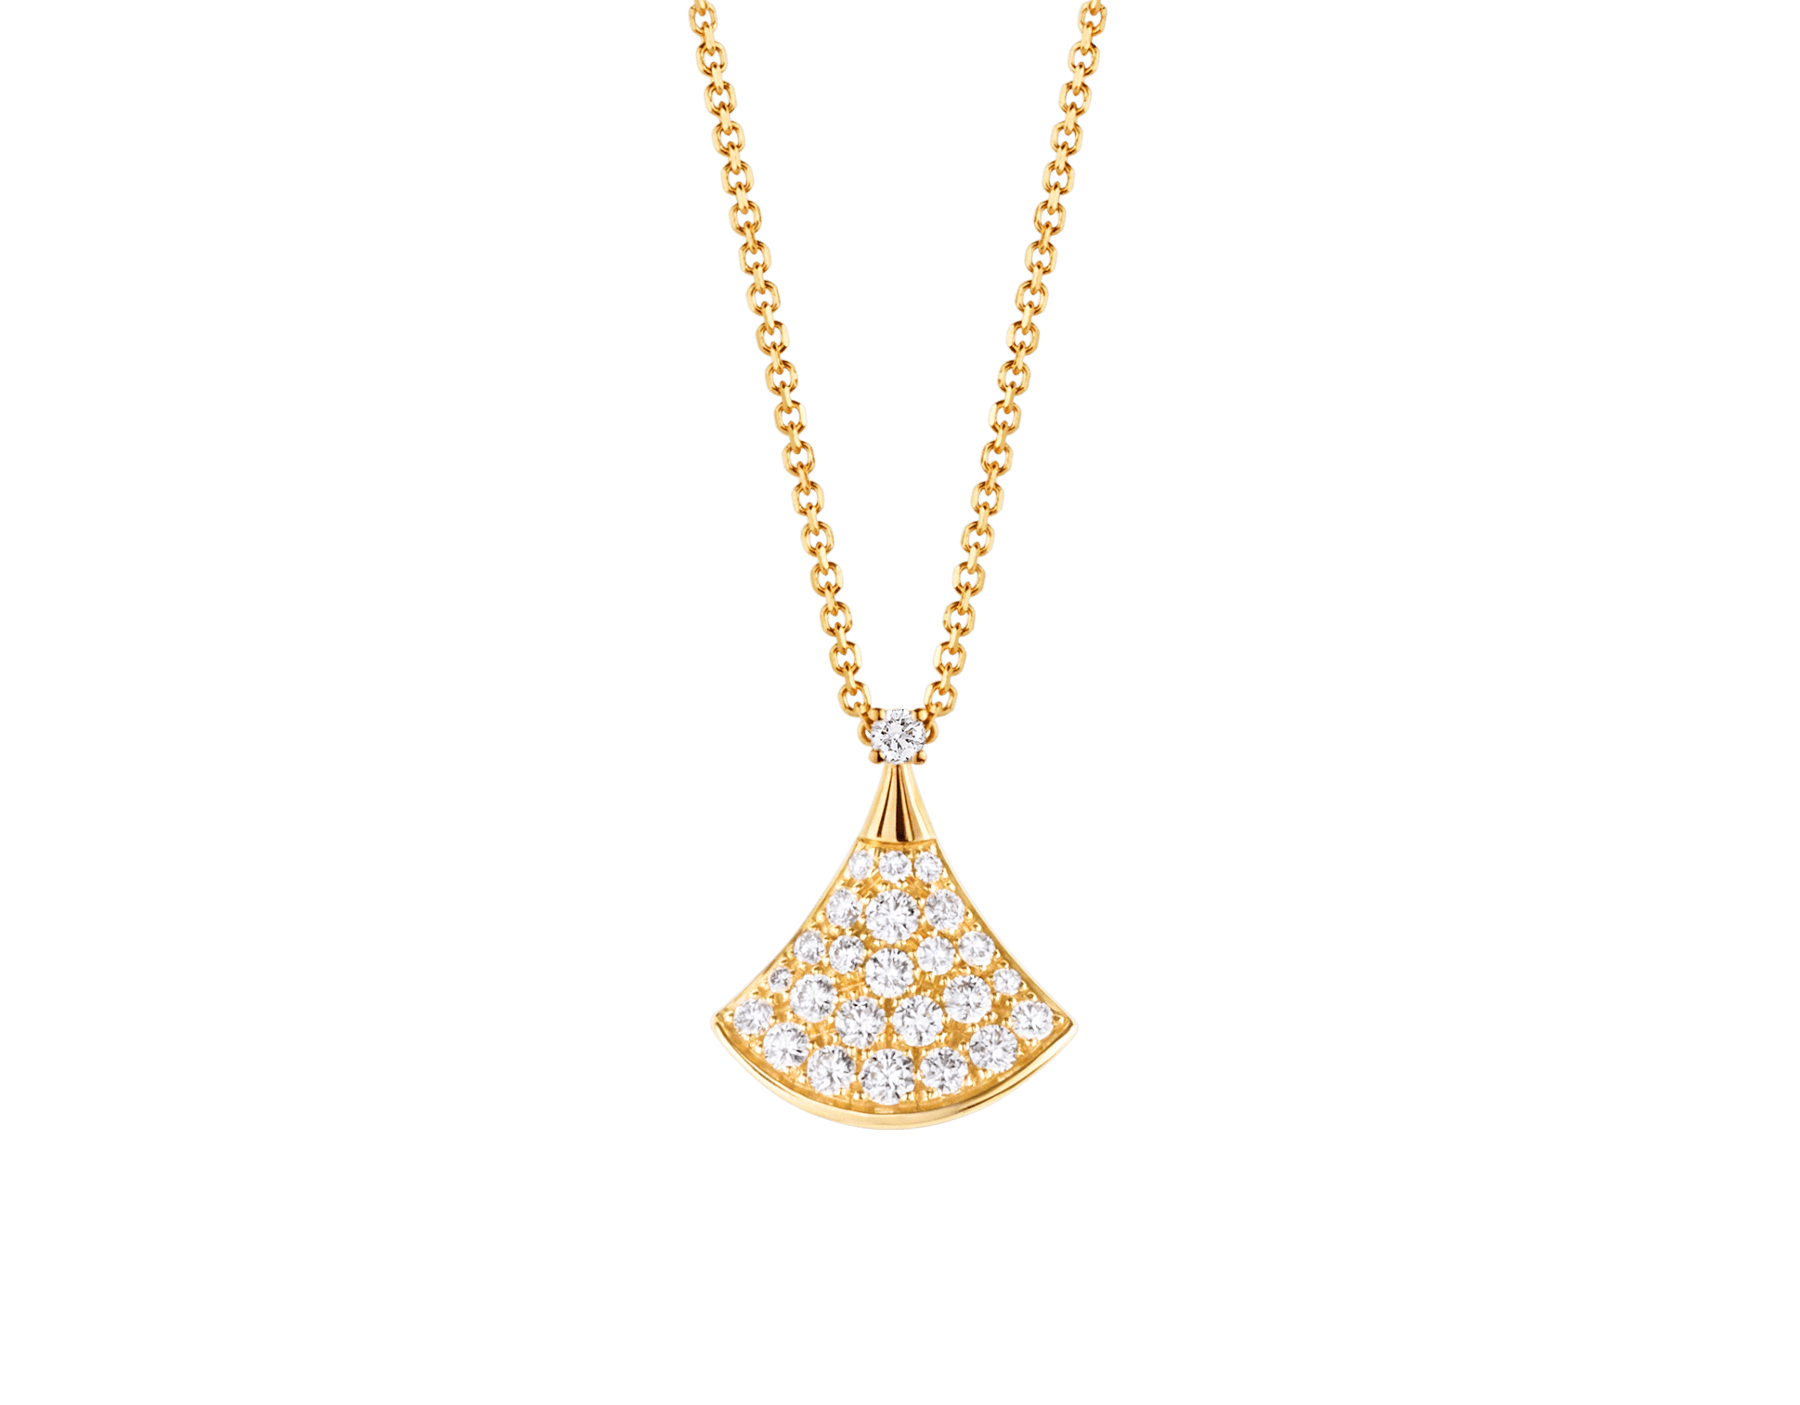 DIVAS' DREAM 18 kt yellow gold necklace with pendant set with one diamond and pavé diamonds 357511 image 1